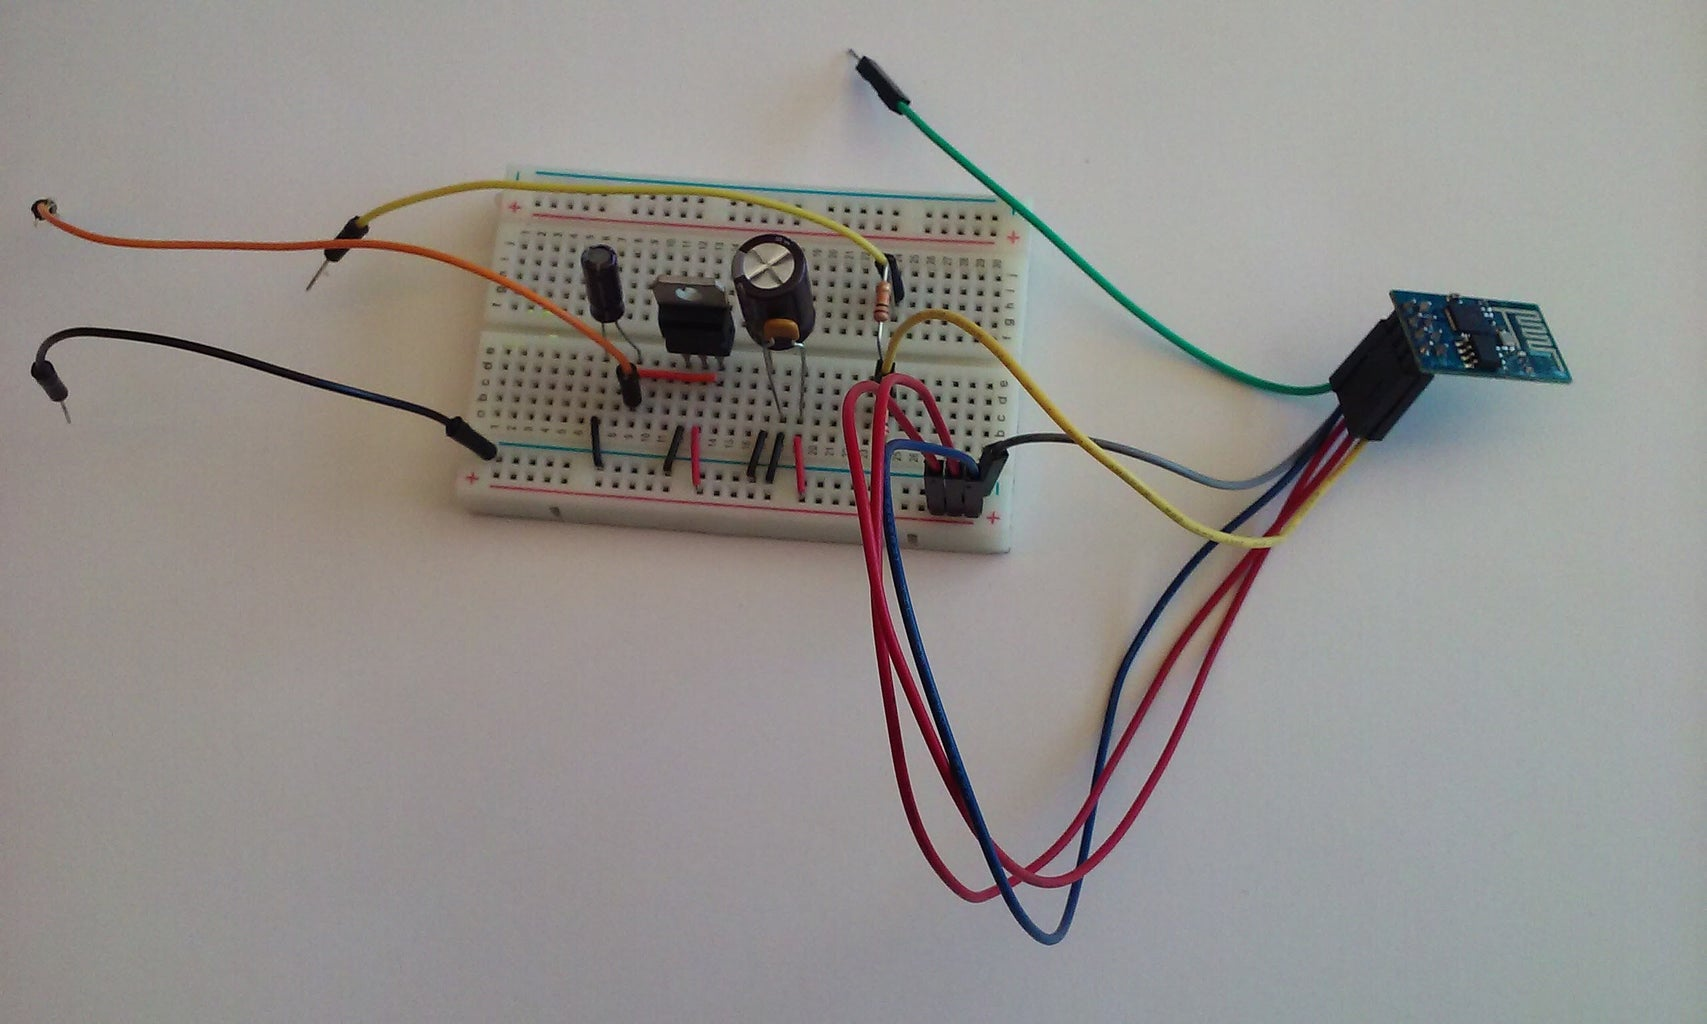 Wire Up the WiFi Module